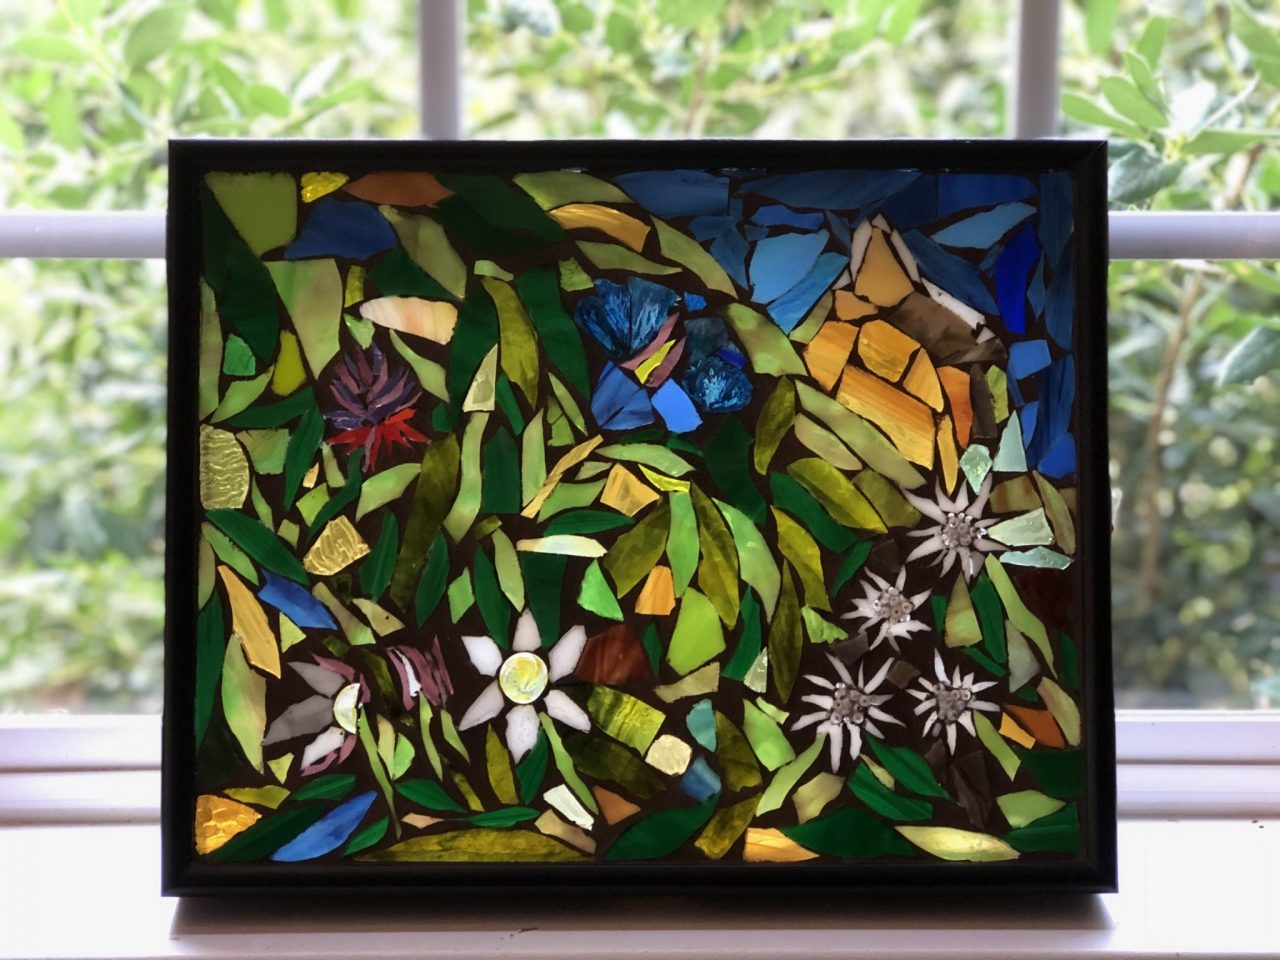 alpine flowers Glass Mosaic-GermaniaDesign.com